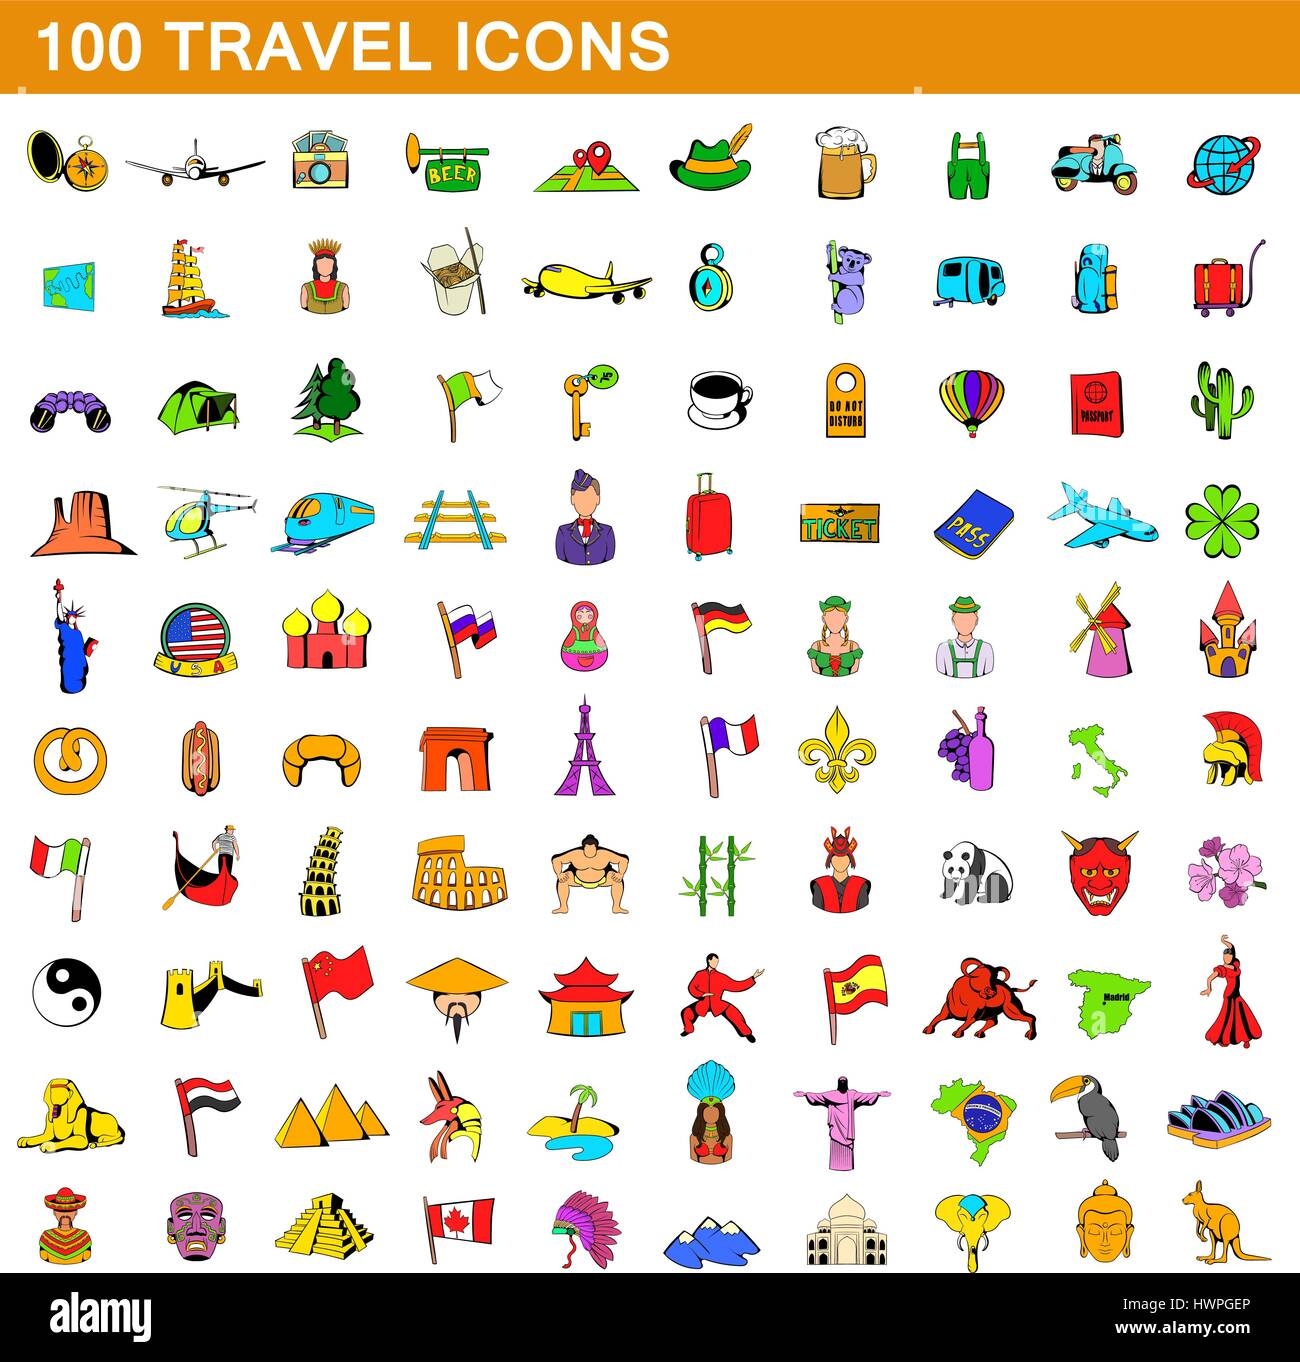 100 travel icons set, cartoon style - Stock Vector